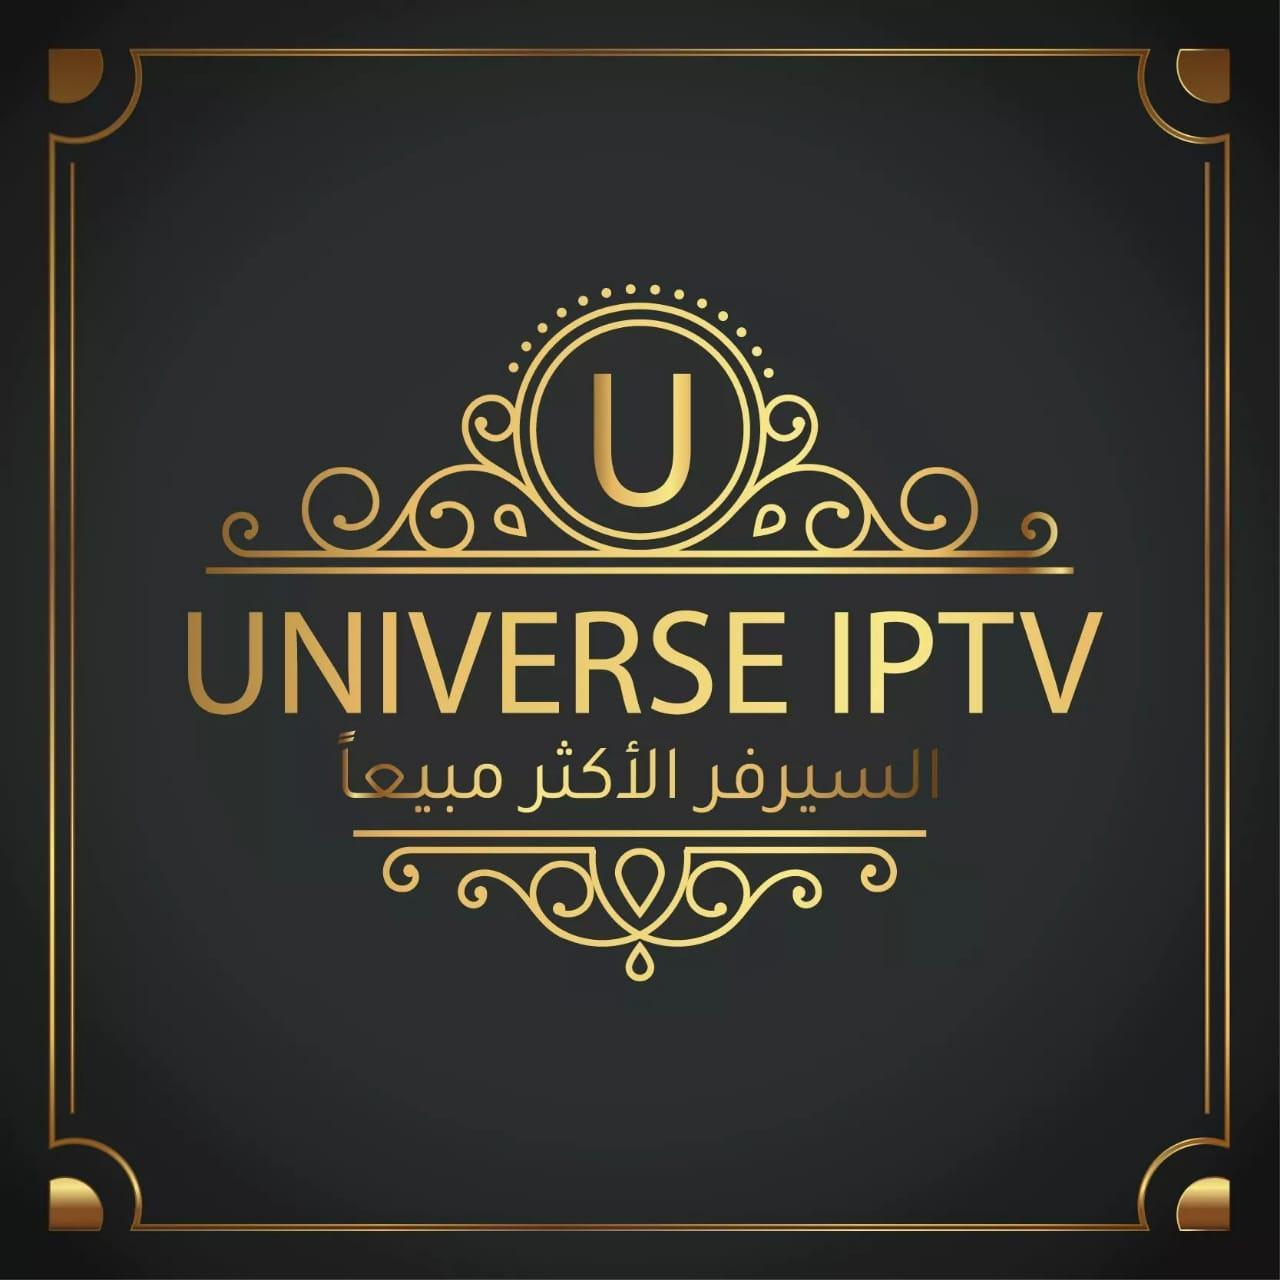 Universe TV 2 1 عربي for Android - APK Download